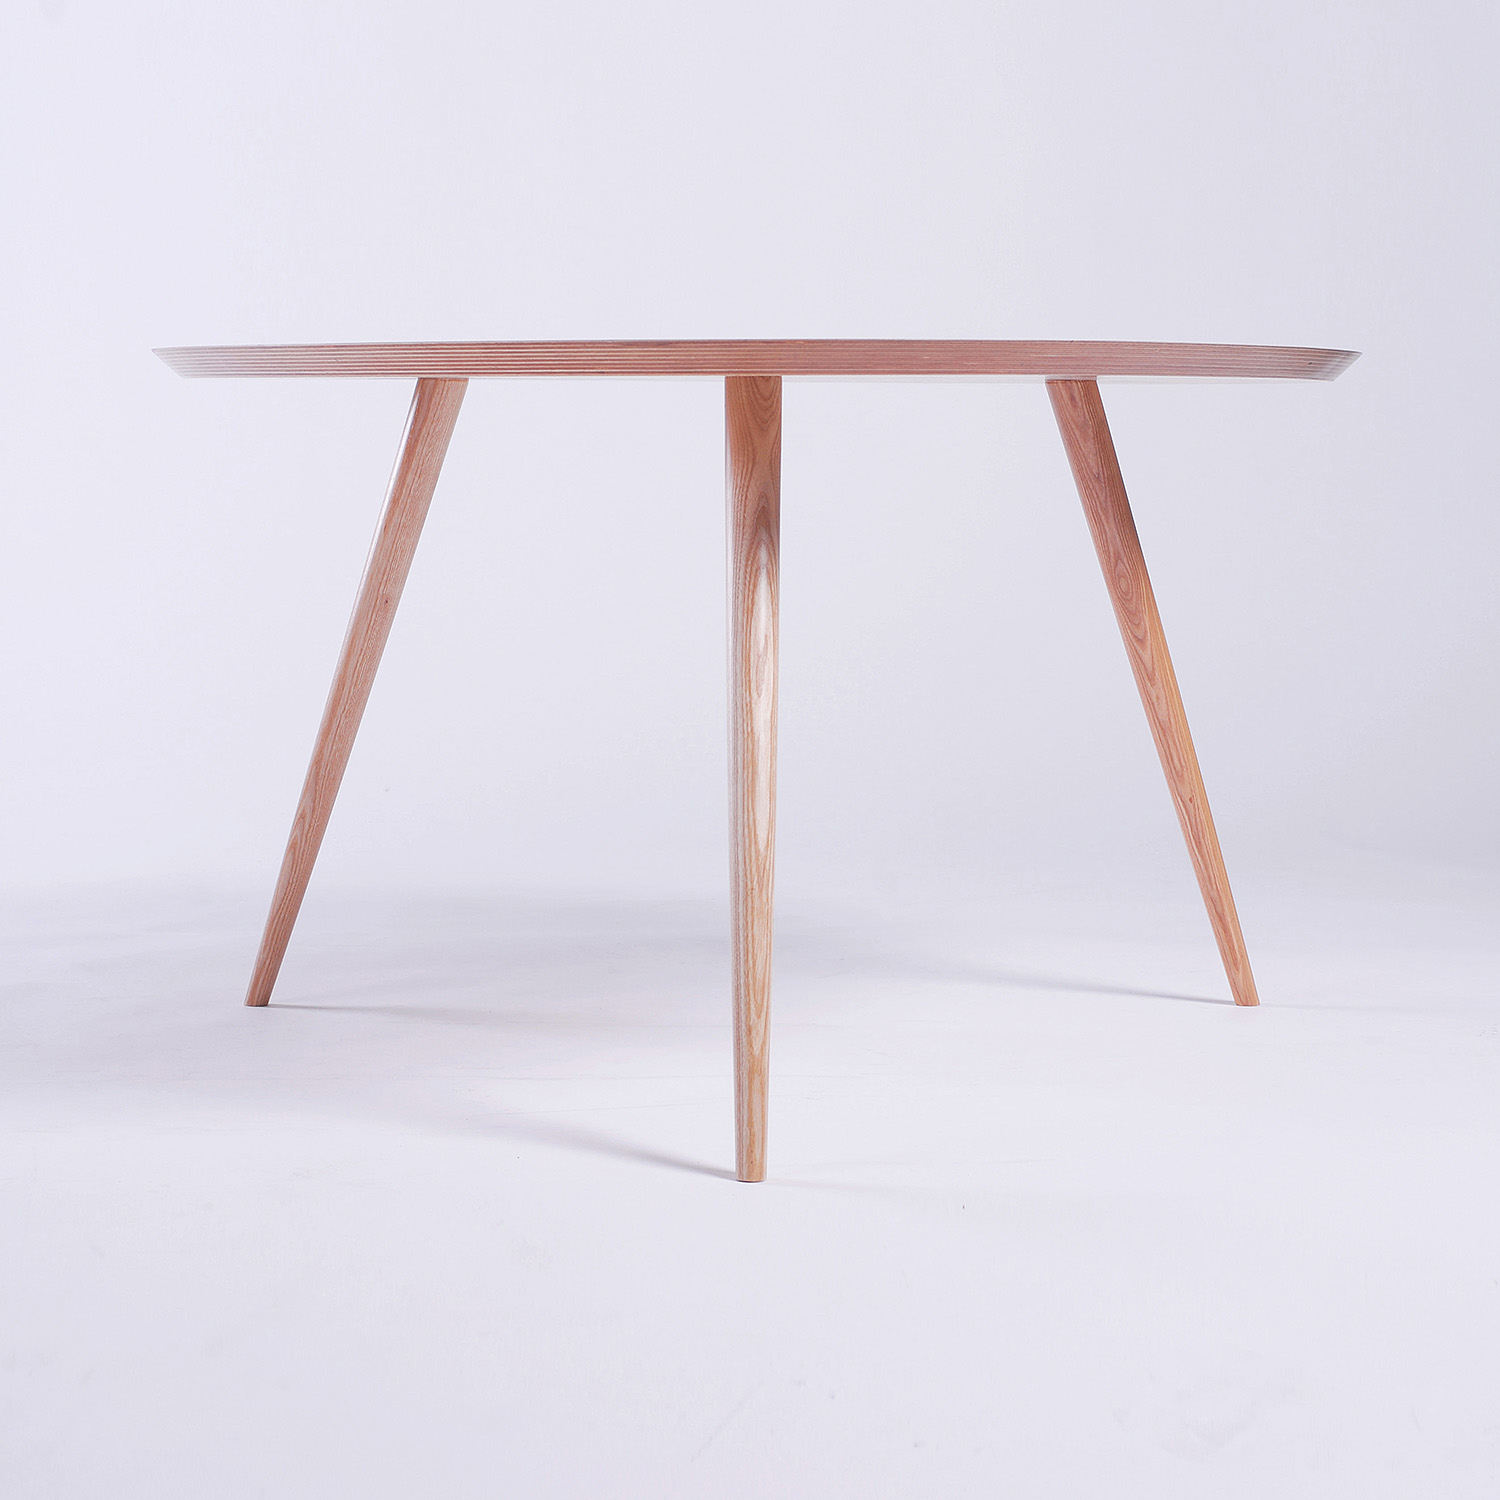 Rth2 coffee table